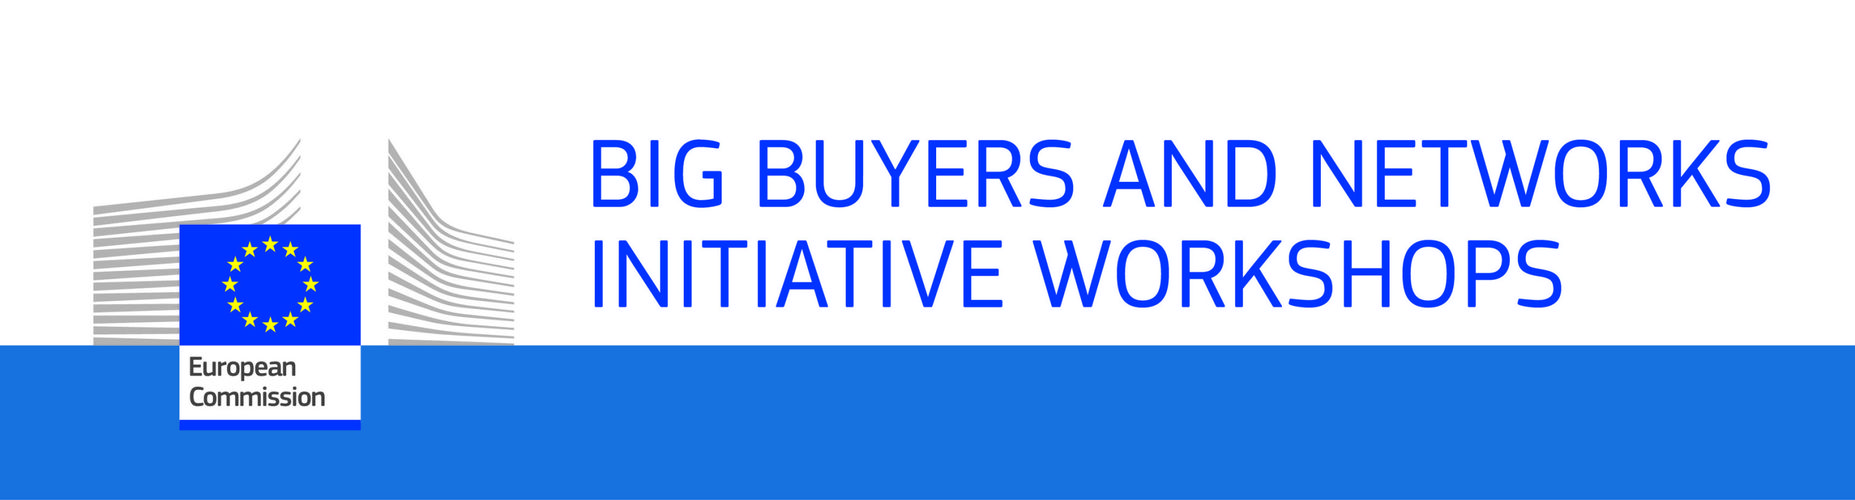 Big Buyers and Networks Initiative workshops - Helsinki 24-25 March